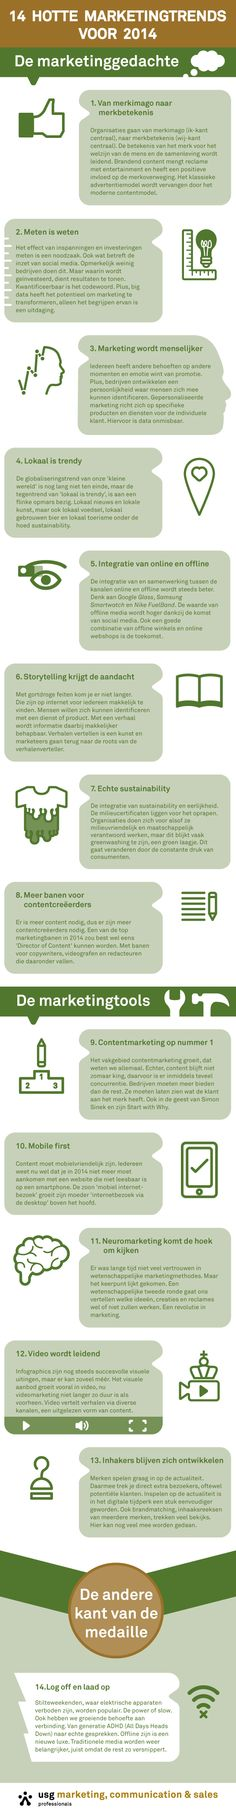 Via http://www.marketingfacts.nl/berichten/14-hotte-marketingtrends-voor-2014